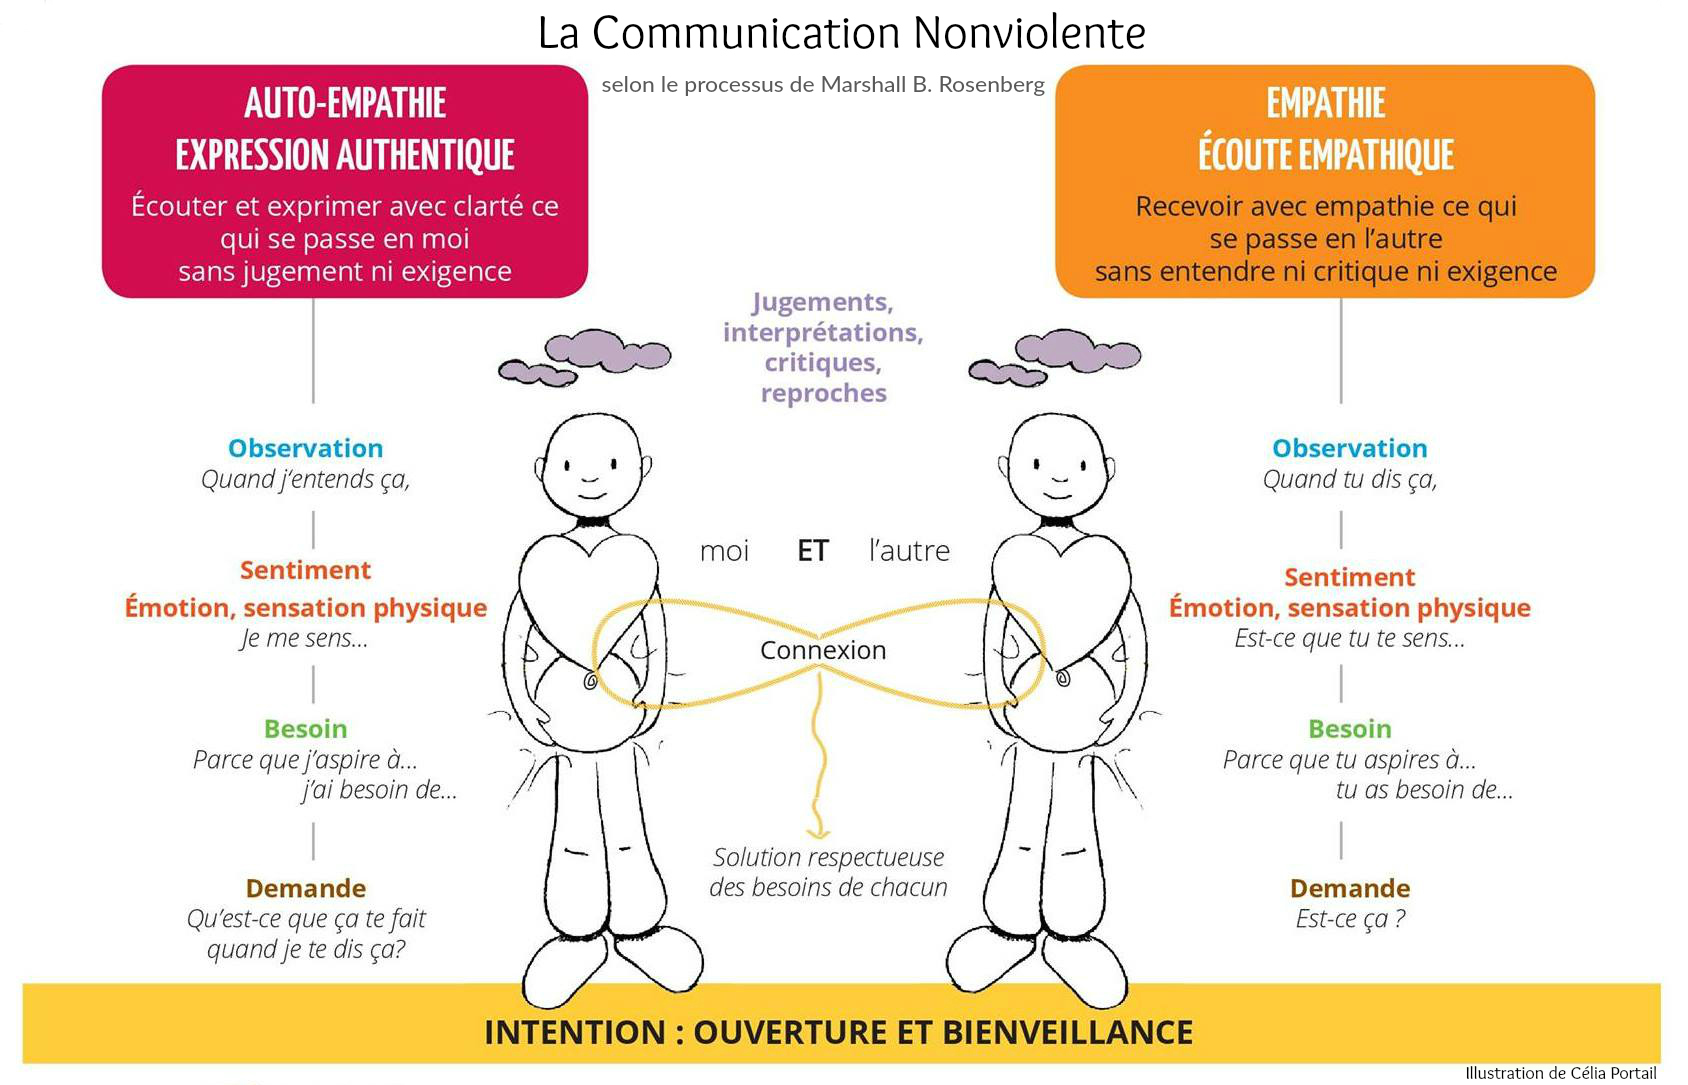 La communication non-violente